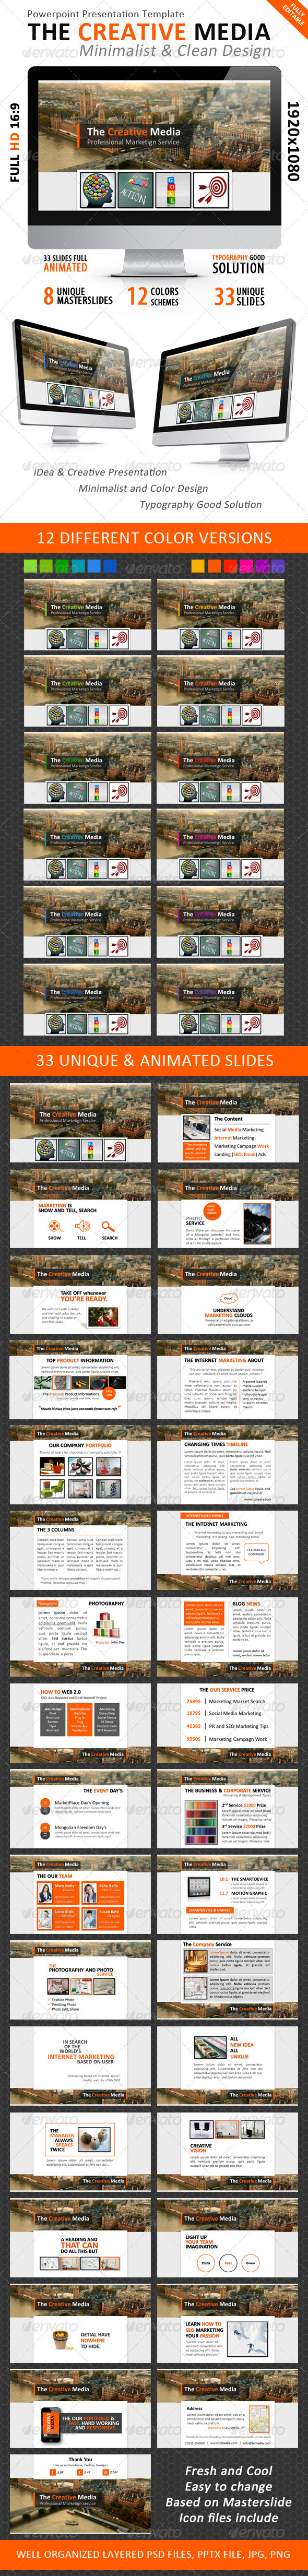 GraphicRiver The Creative Media-Minimalist Powerpoint Template 3433777